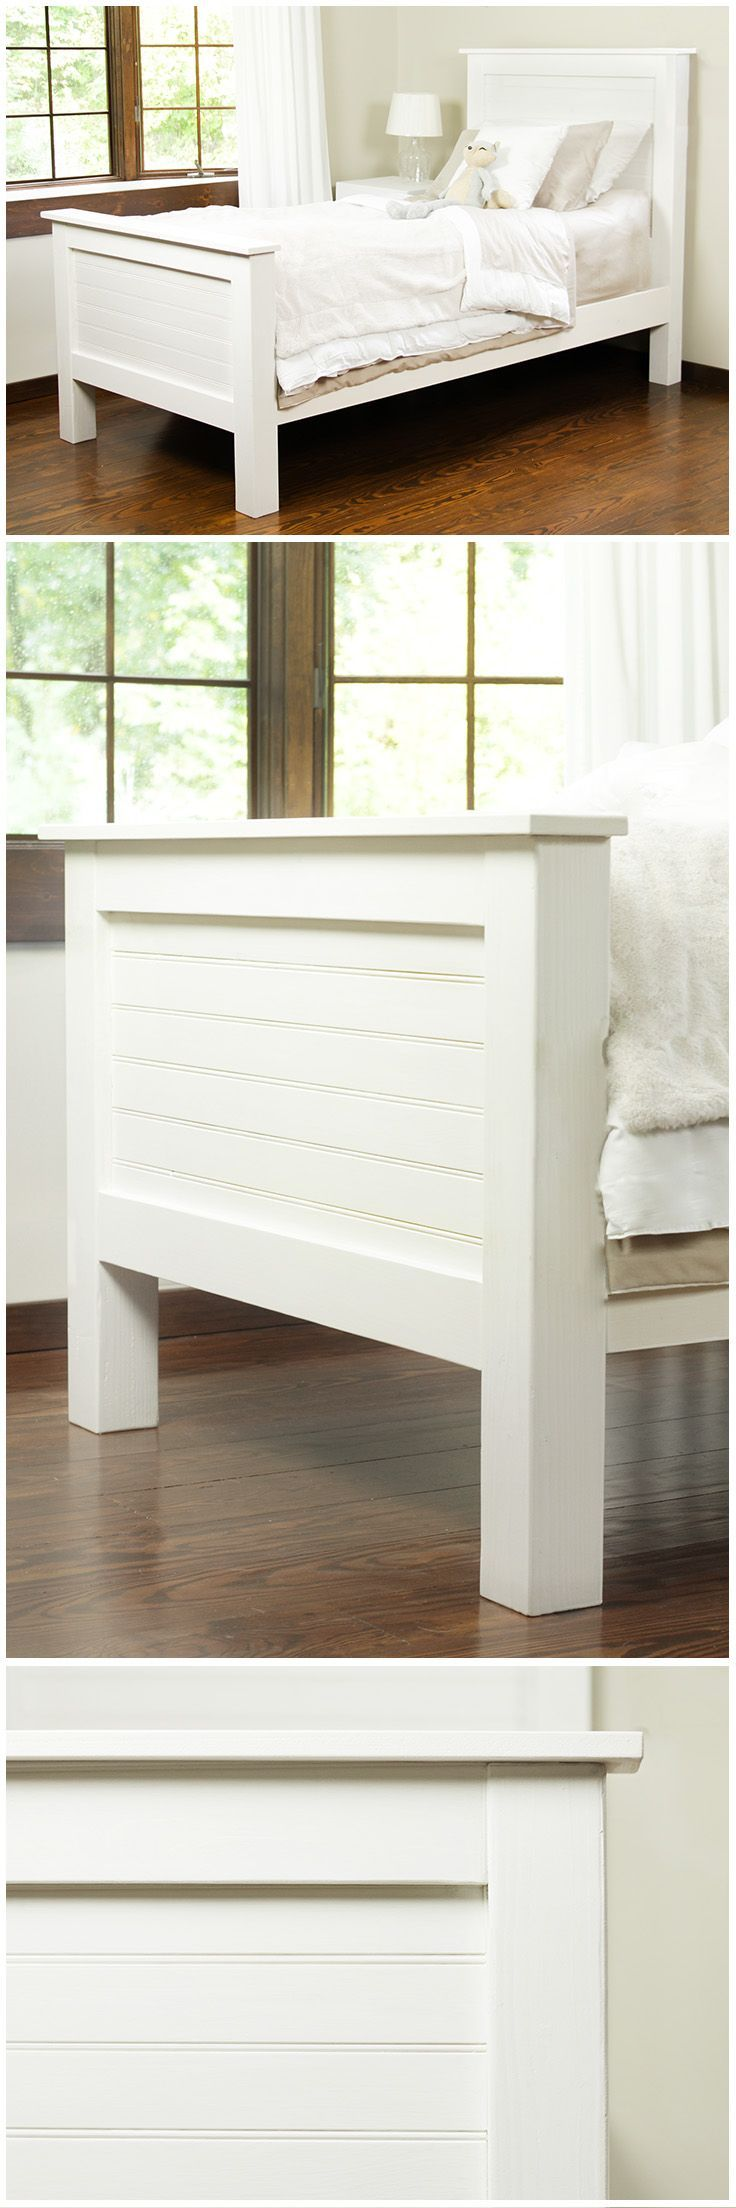 Headboard bench For the Home Pinterest Headboard